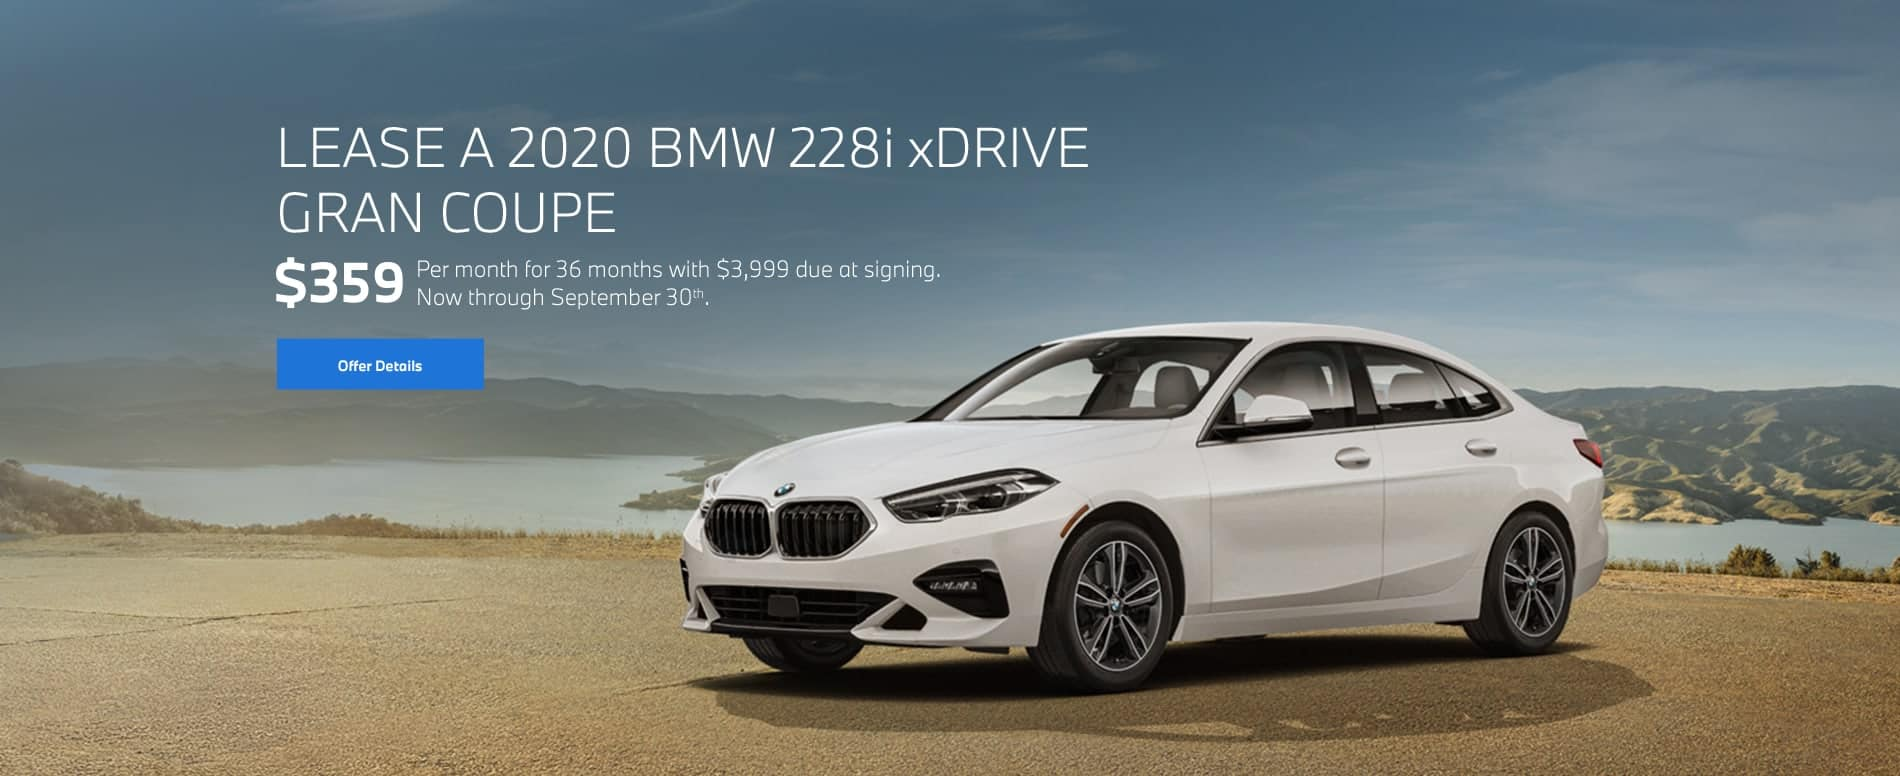 2020 BMW 228i xDrive Gran Coupe for $359/mo